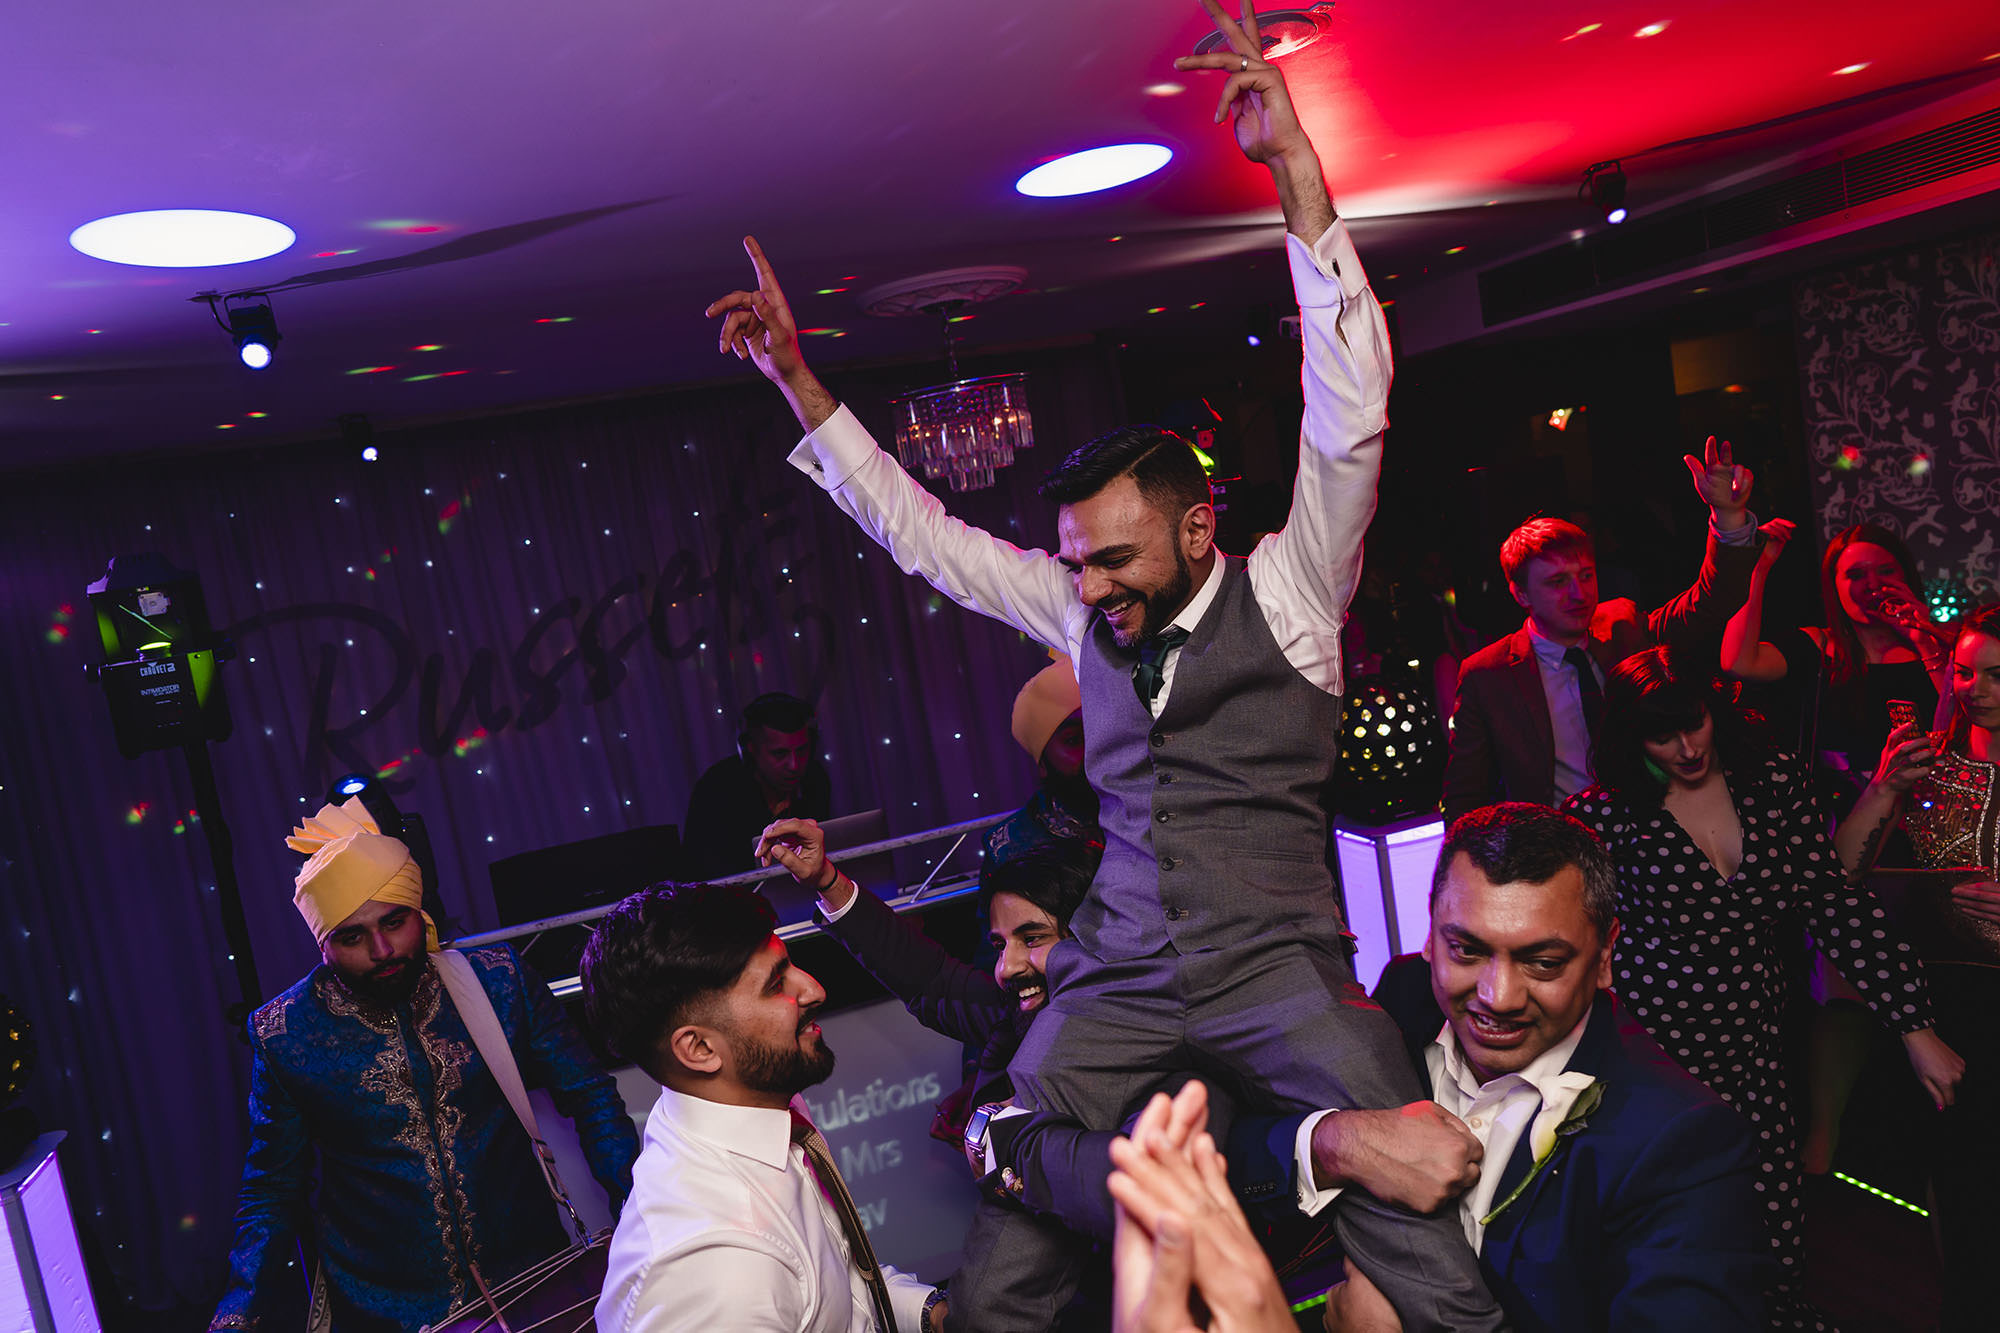 groom lifted onto shoulders during reception party